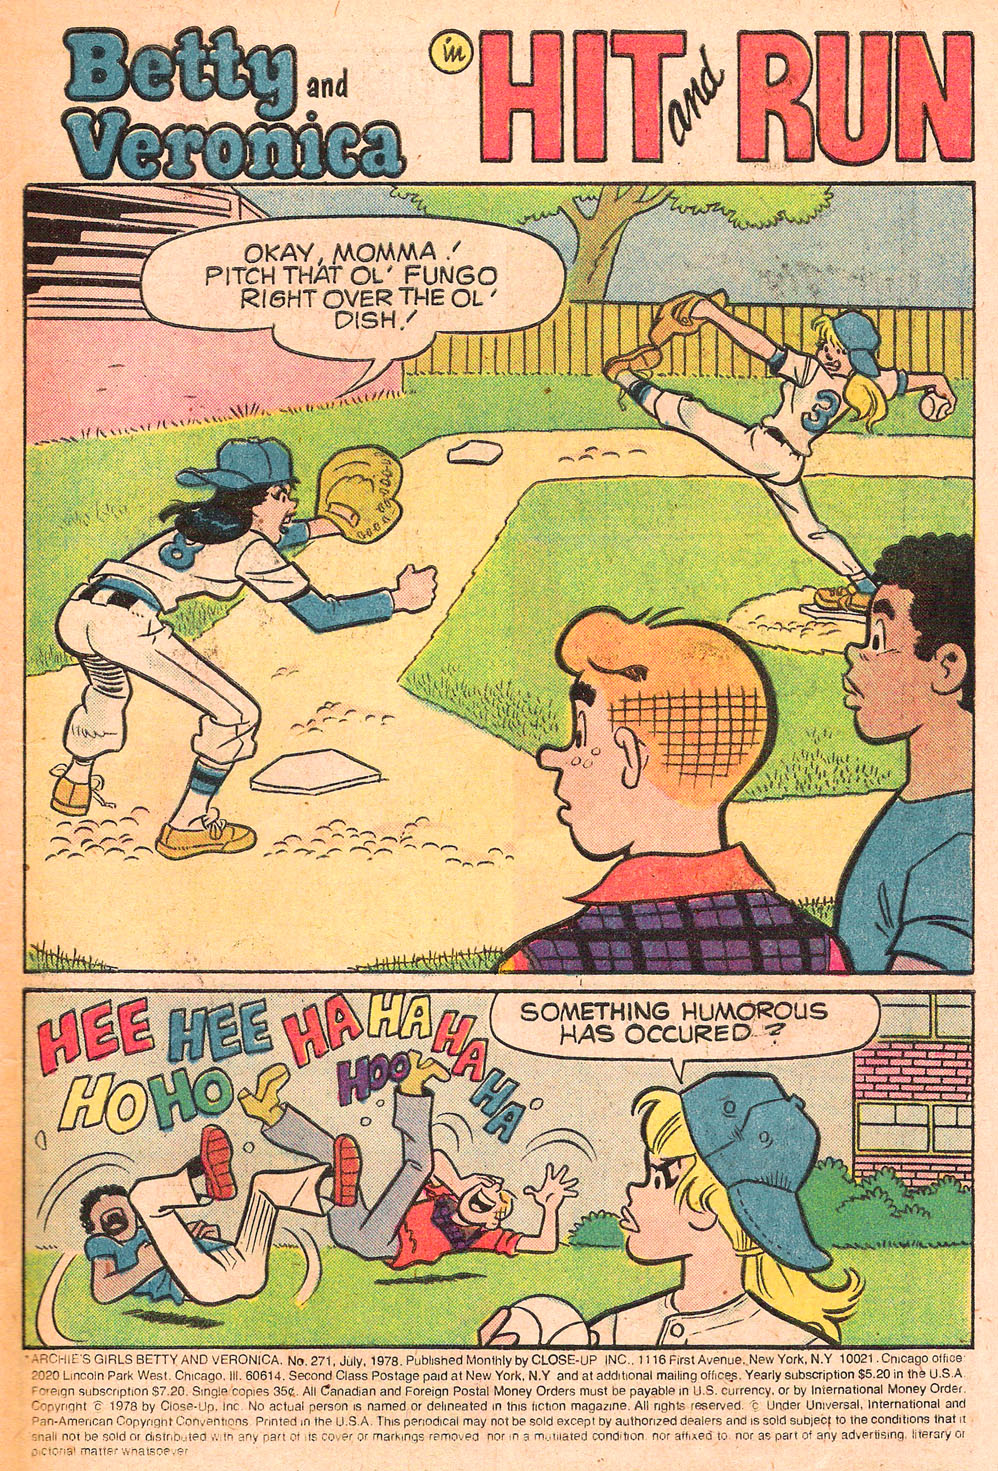 Read online Archie's Girls Betty and Veronica comic -  Issue #271 - 3